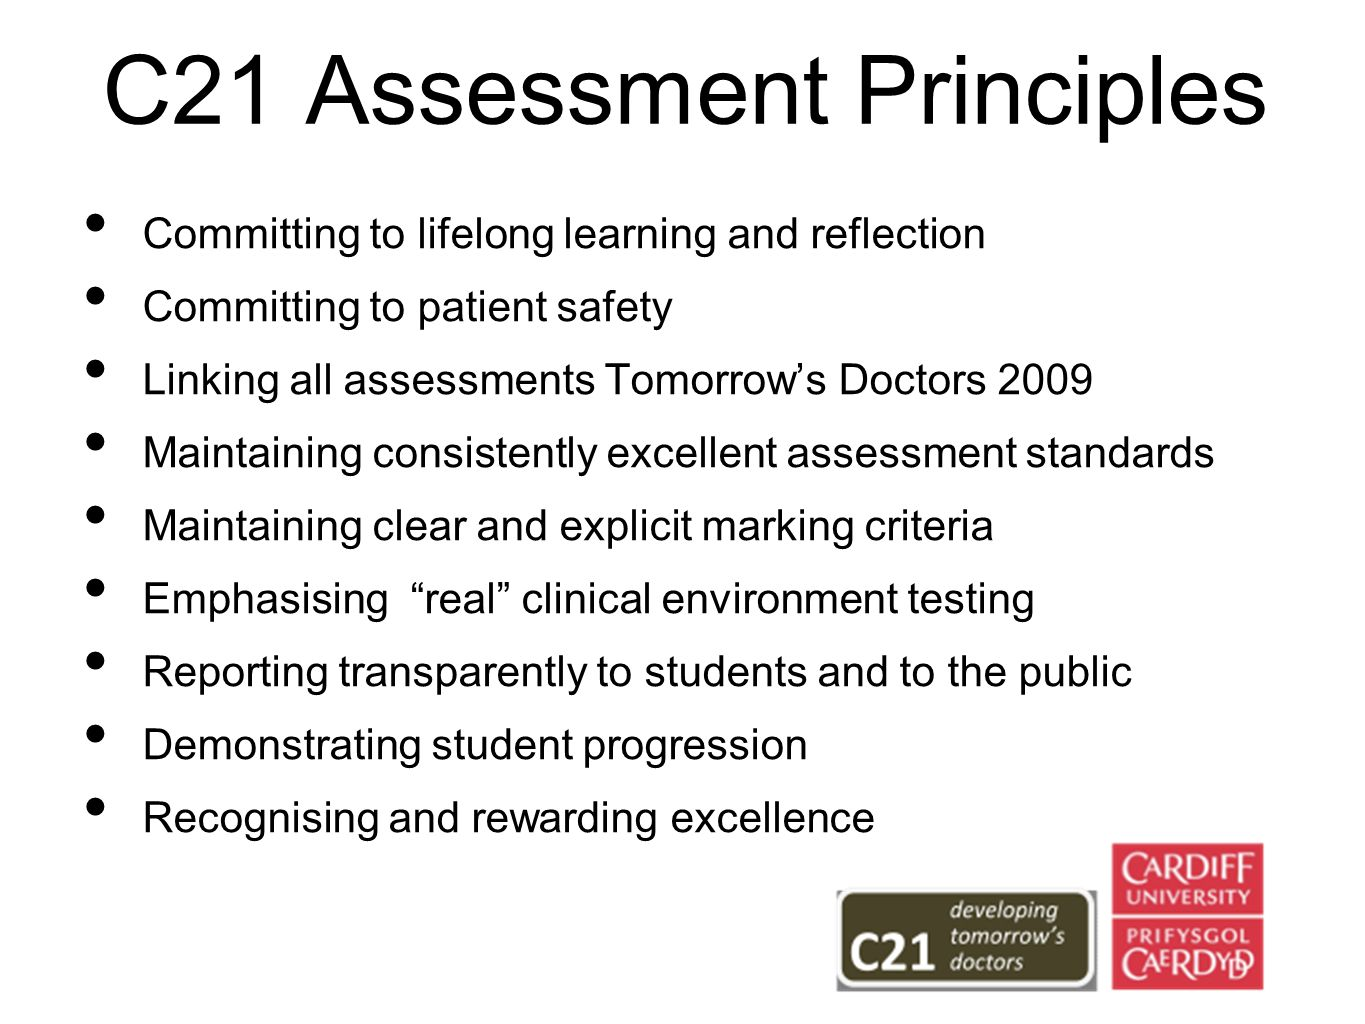 C21 Assessment Principles Committing to lifelong learning and reflection Committing to patient safety Linking all assessments Tomorrows Doctors 2009 Maintaining consistently excellent assessment standards Maintaining clear and explicit marking criteria Emphasising real clinical environment testing Reporting transparently to students and to the public Demonstrating student progression Recognising and rewarding excellence